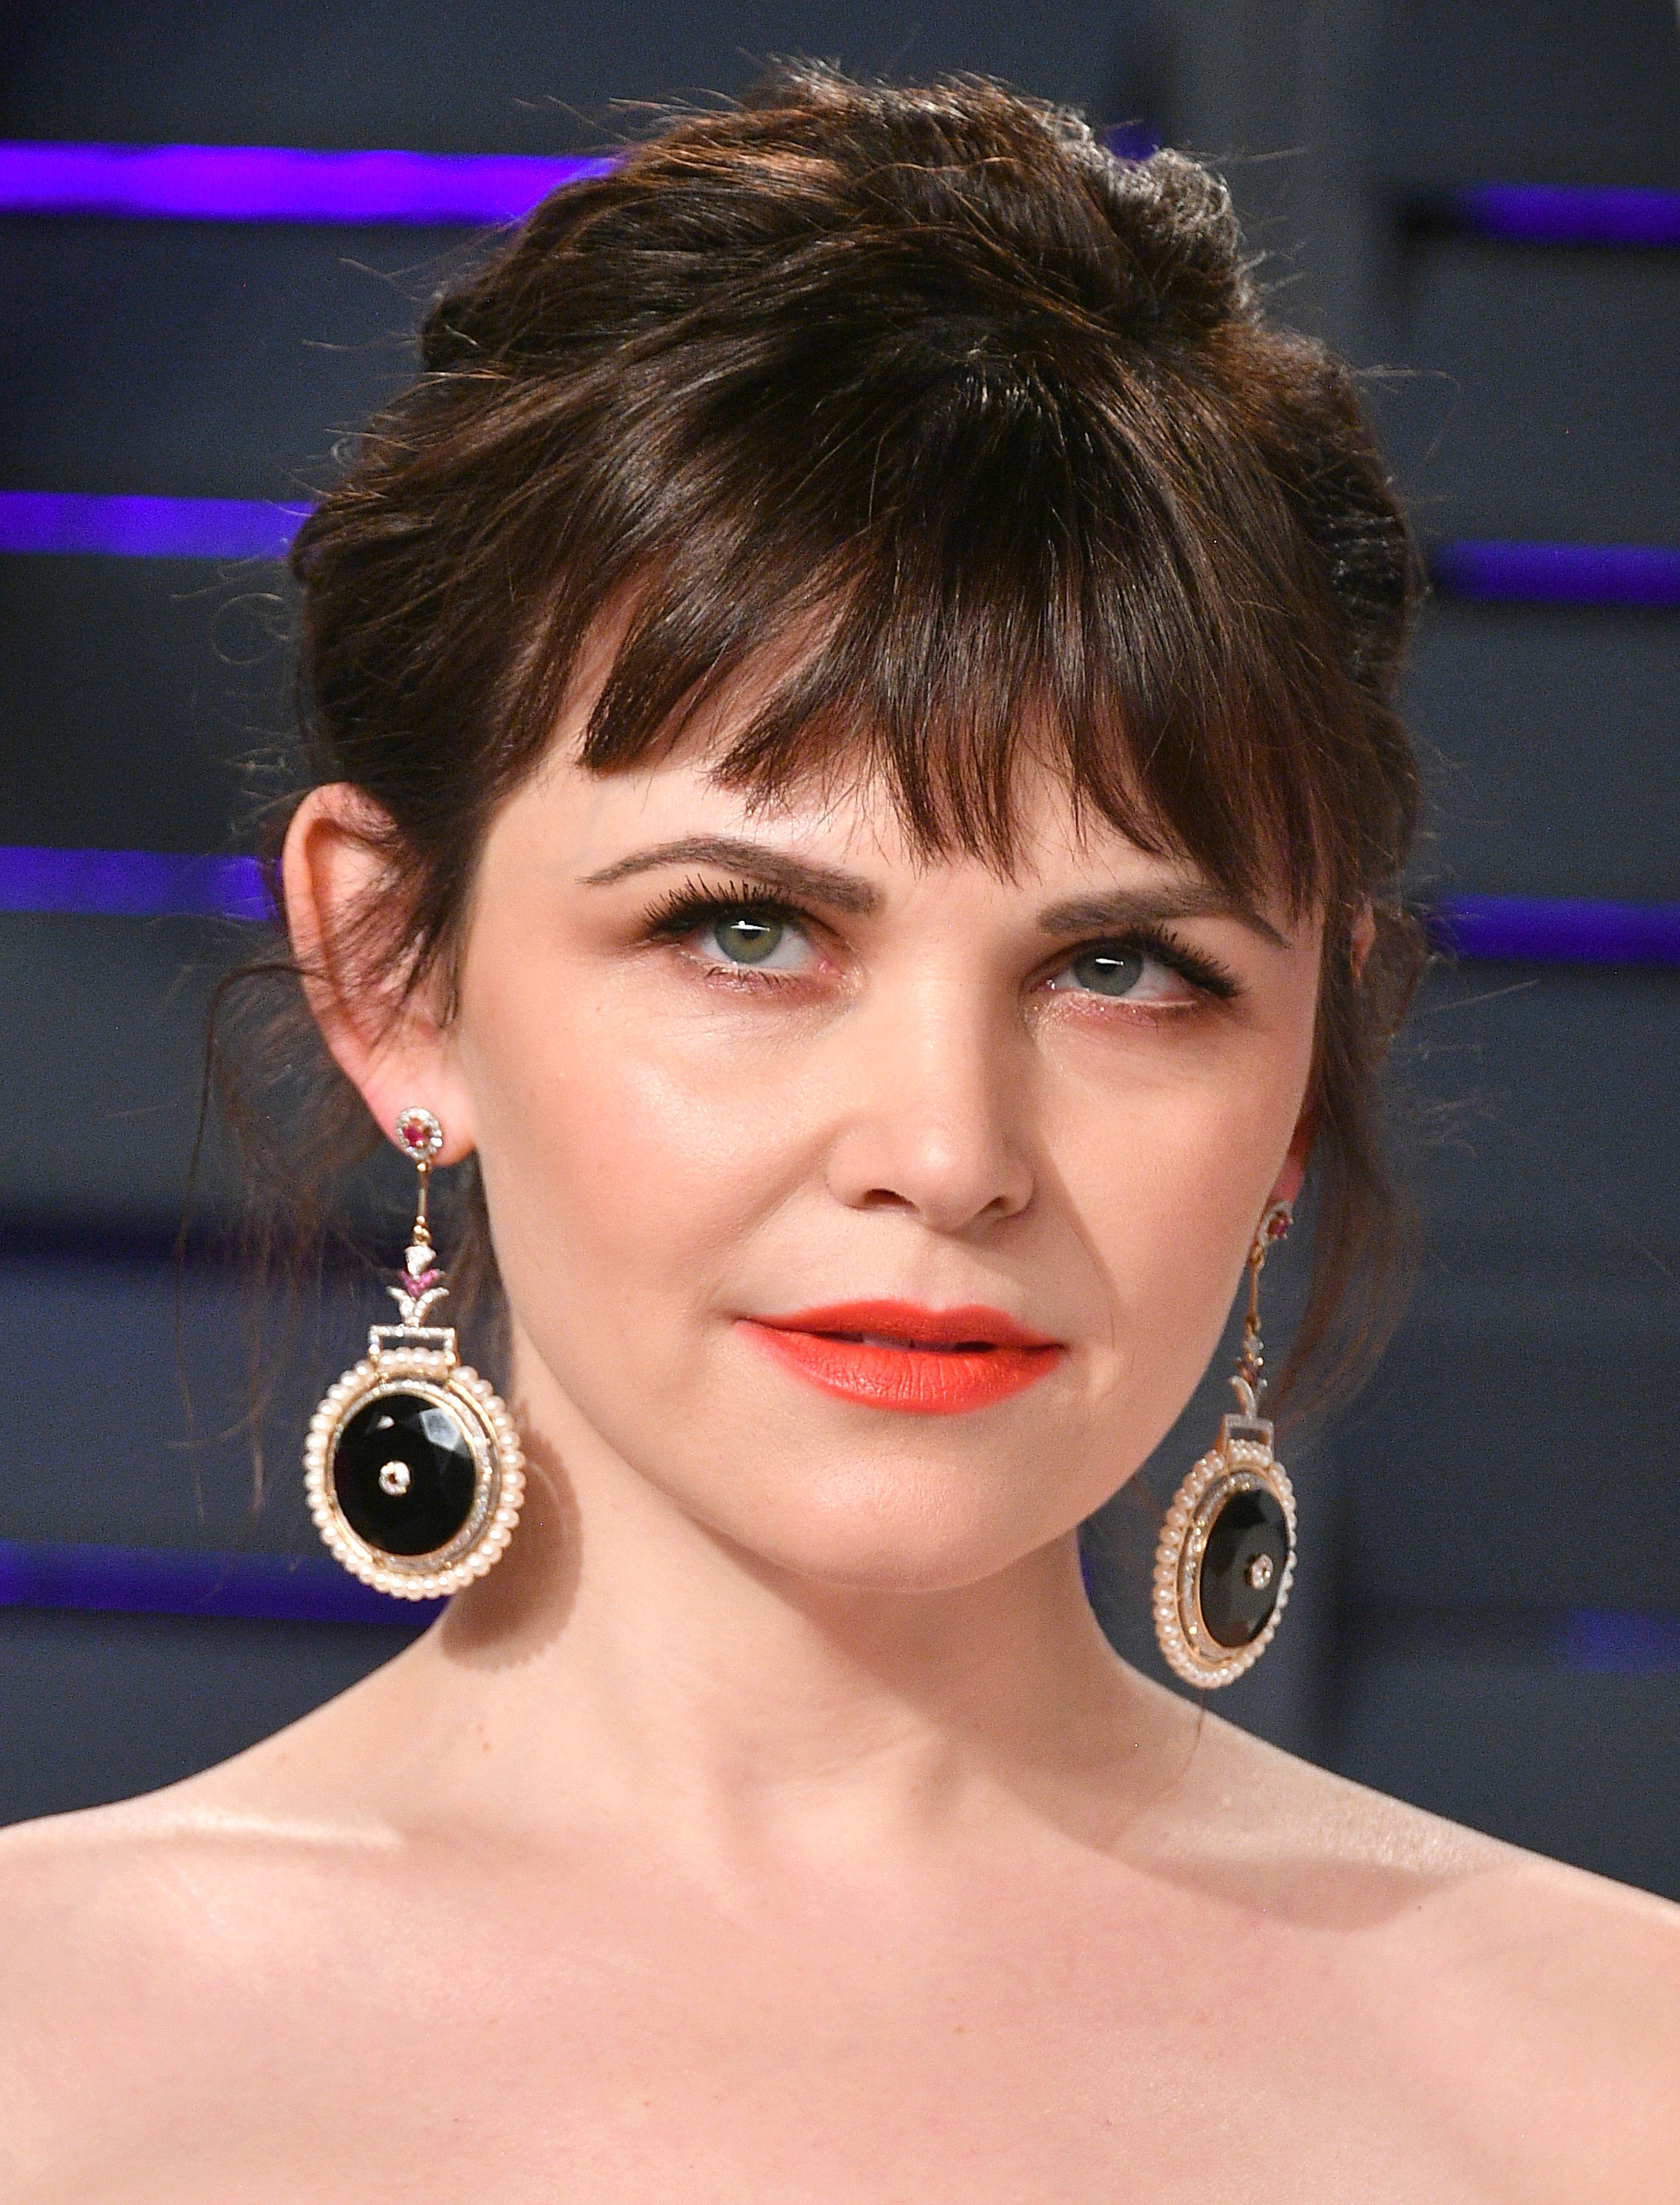 """Every Celeb Appearing on the New 'Twilight Zone' Ginnifer Goodwin - In the fifth episode, titled """"Point of Origin,"""" Once Upon a Time 's Ginnifer Goodwin will appear. The plot has not yet been revealed."""